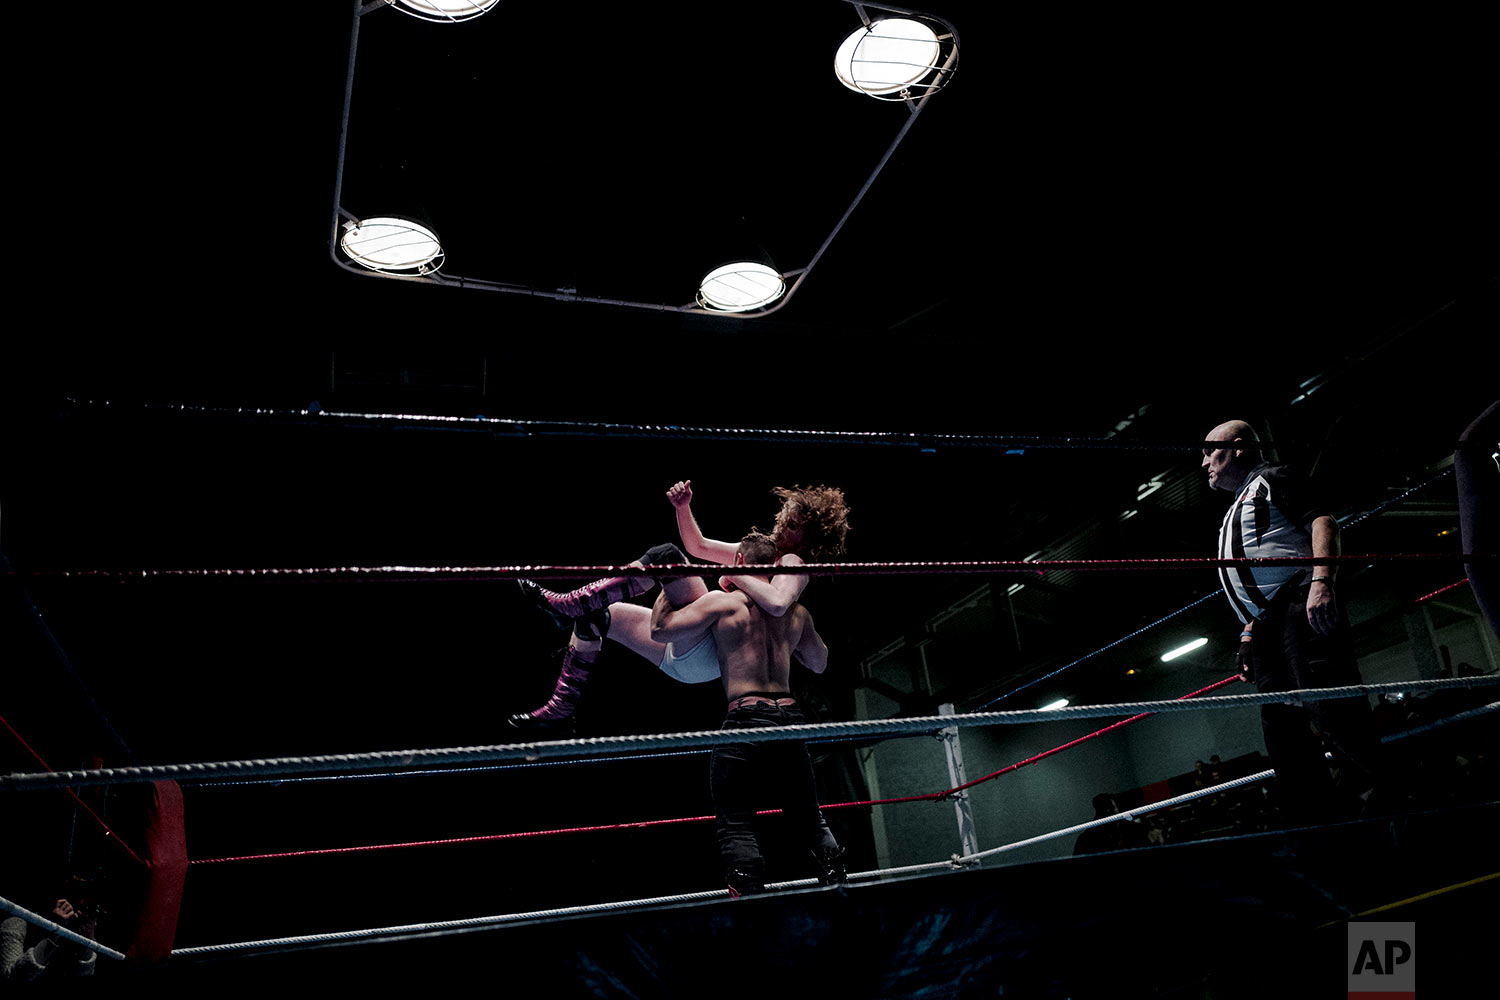 In this photo dated Saturday, Feb. 24, 2018, wrestler Lord Steven Crowley, top, jumps on Zack during a wrestling charity gala in Ivry-sur-Seine, south of Paris, France. (AP Photo/Kamil Zihnioglu)